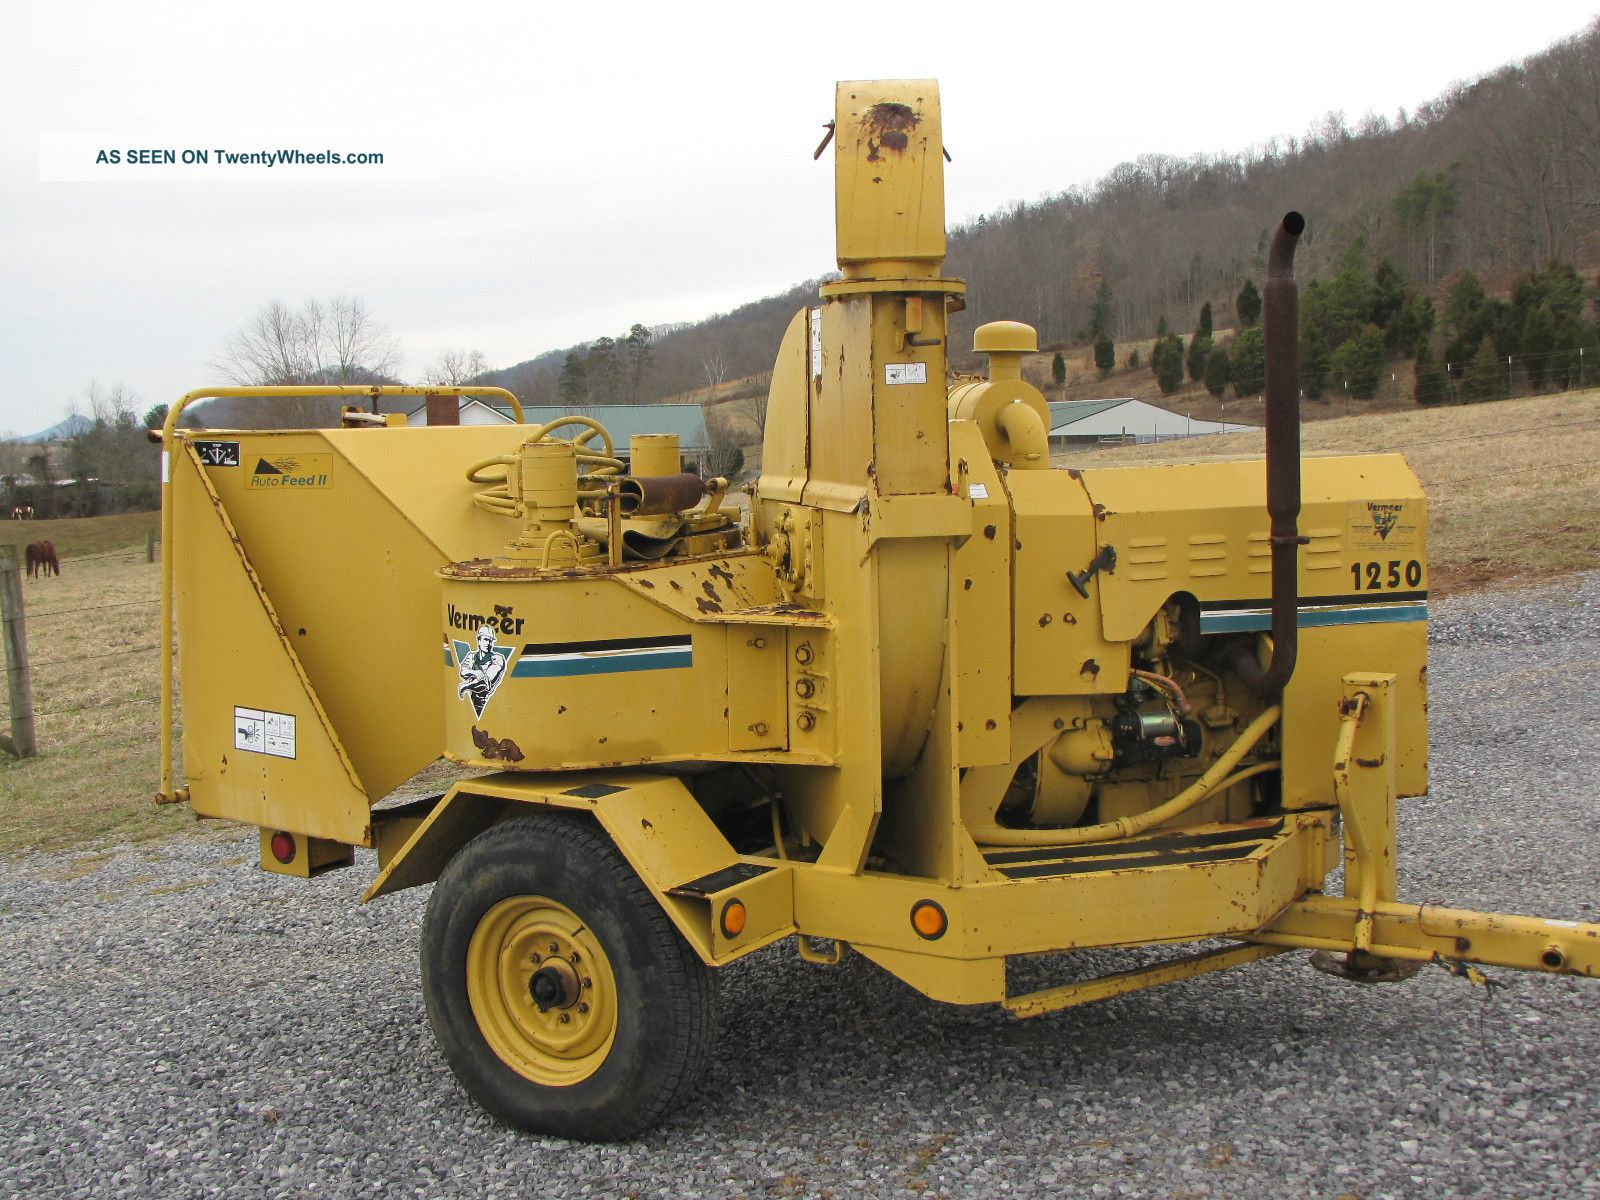 Vermeer 1250 Turbo Diesel 12 Inch Disk Style Brush Chipper Wood Chippers & Stump Grinders photo